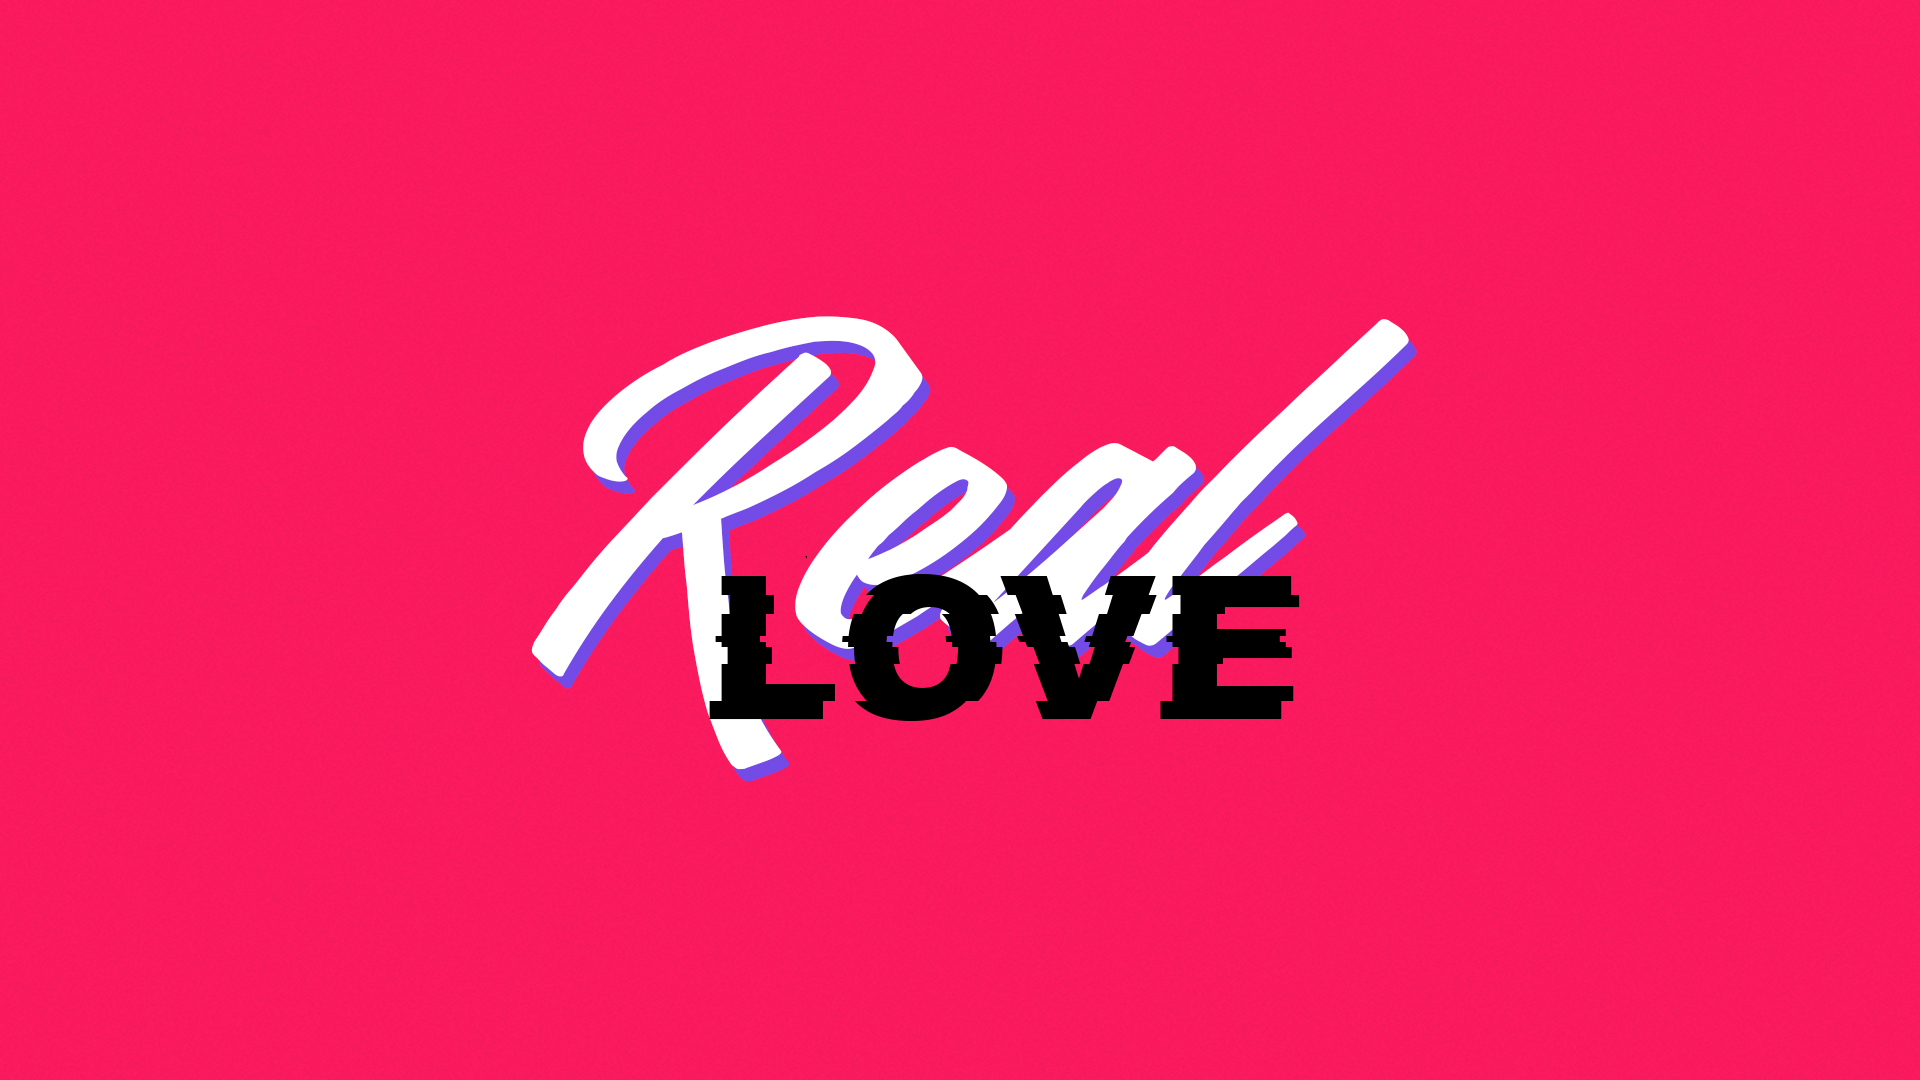 Real love 4